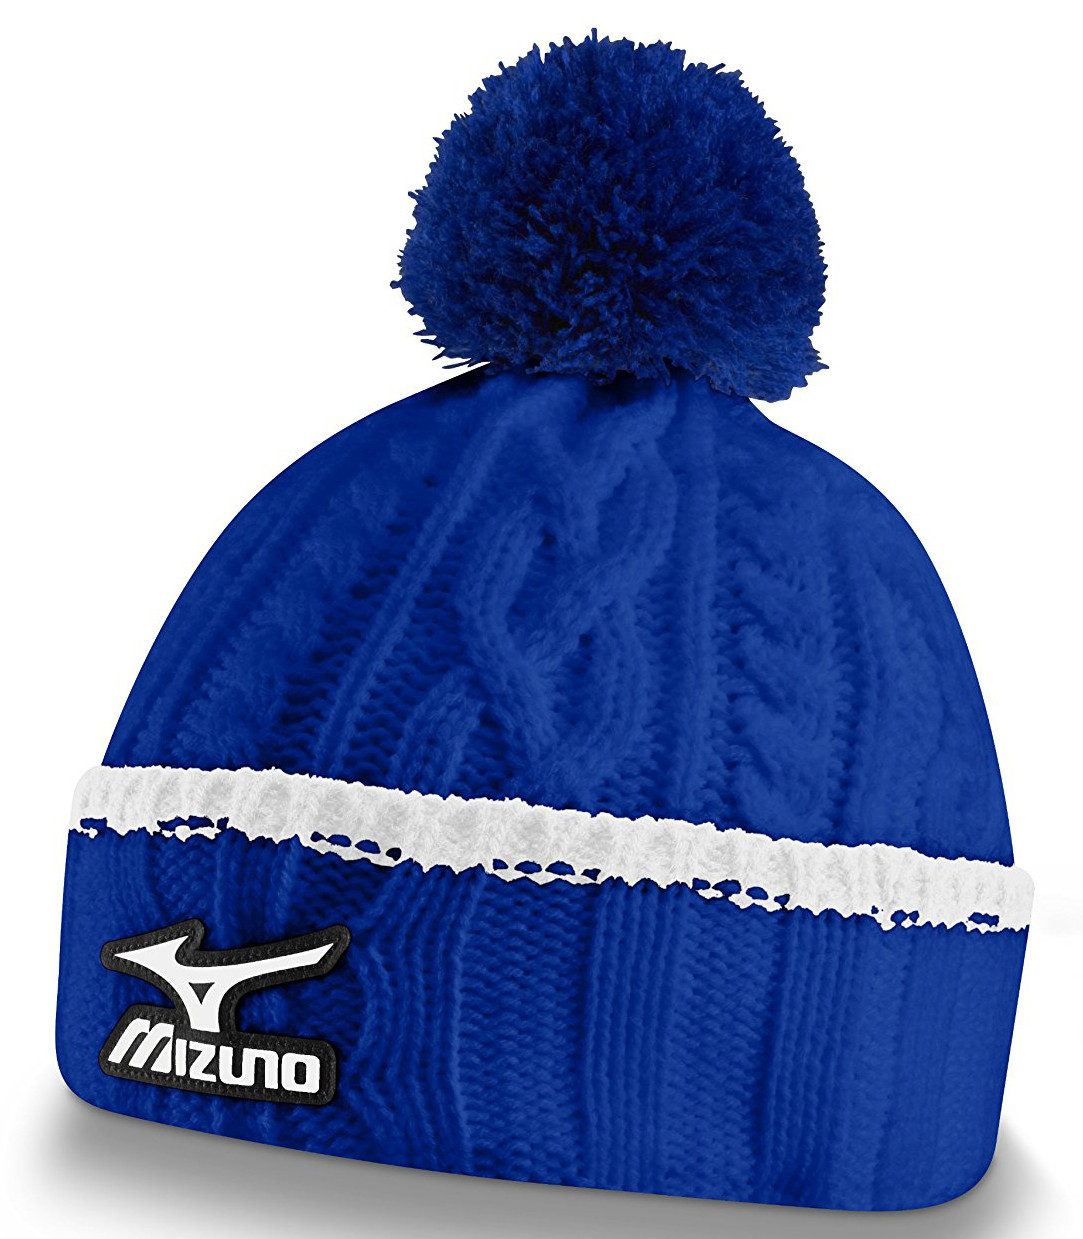 Buy Mens Golf Beanies for Lowest Prices Online! b4644a9695c2